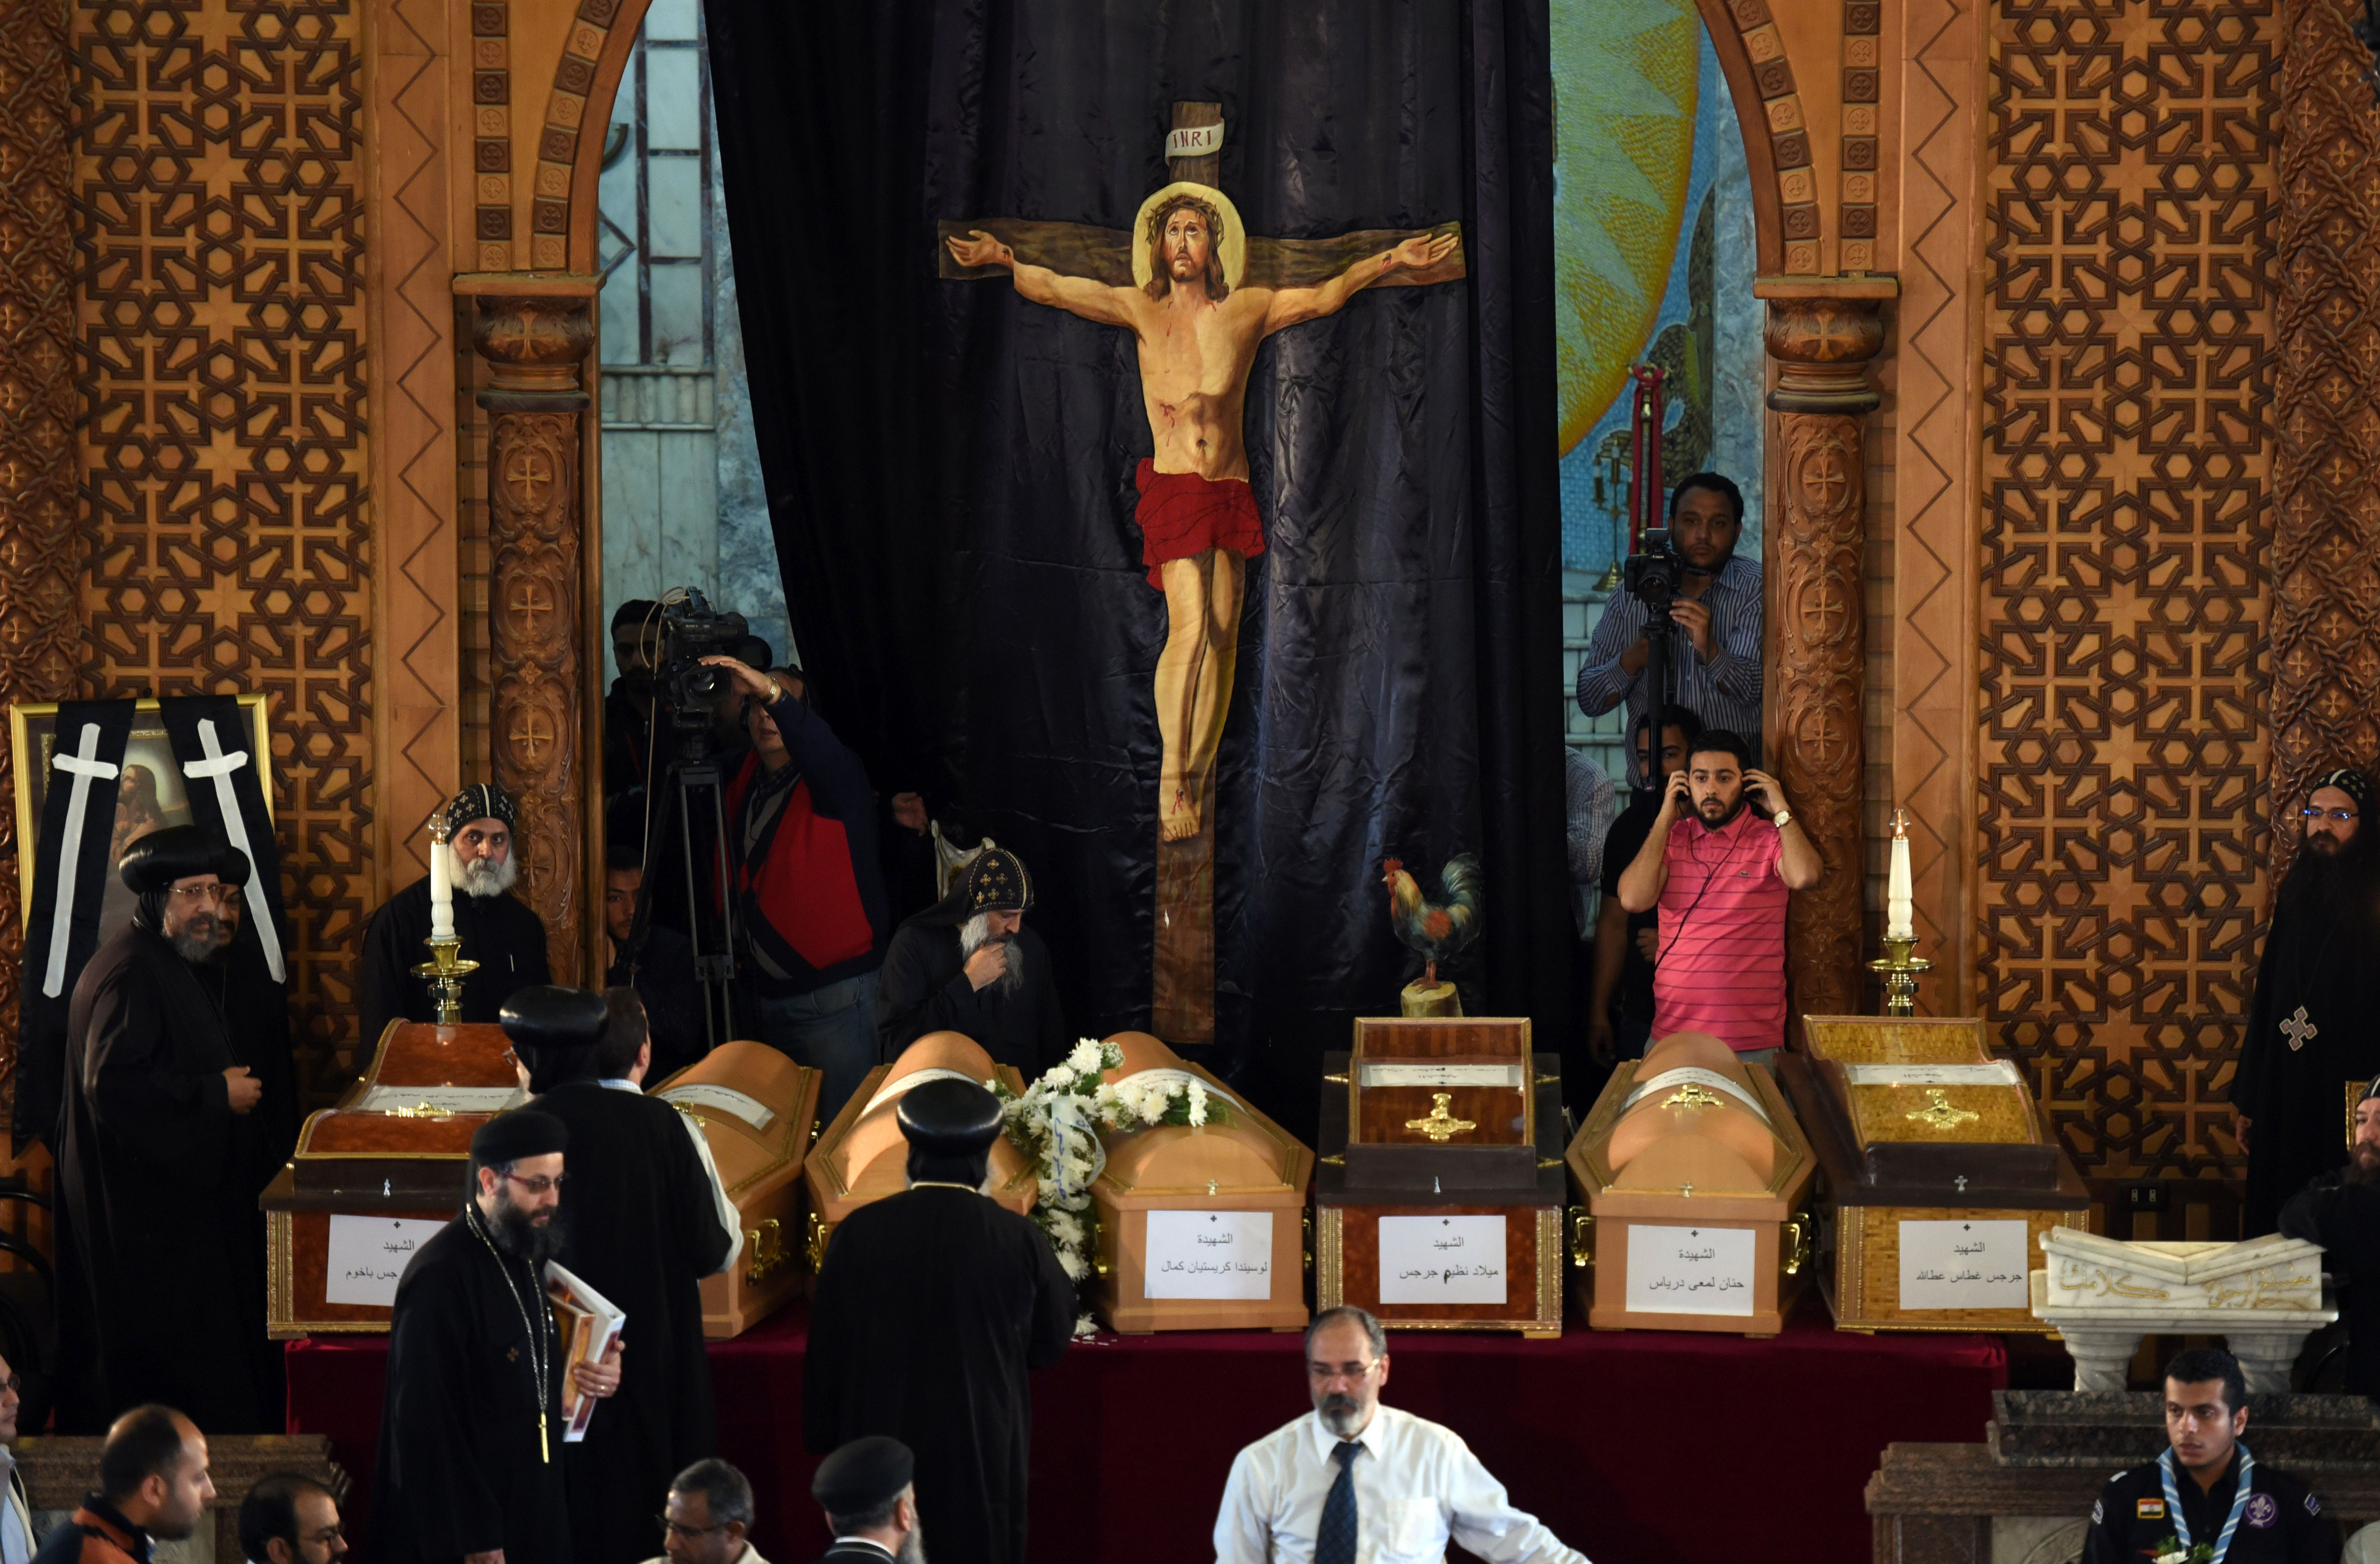 Coptic priests stand near the coffins of victims of the blast at the Coptic Christian Saint Mark's church in Alexandria the previous day during a funeral procession at the Monastery of Marmina in the city of Borg El-Arab, east of the northern port city on April 10, 2017. Egypt prepared to impose a state of emergency after jihadist bombings killed dozens at two churches in the deadliest attacks in recent memory on the country's Coptic Christian minority. (MOHAMED EL-SHAHED/AFP/Getty Images)